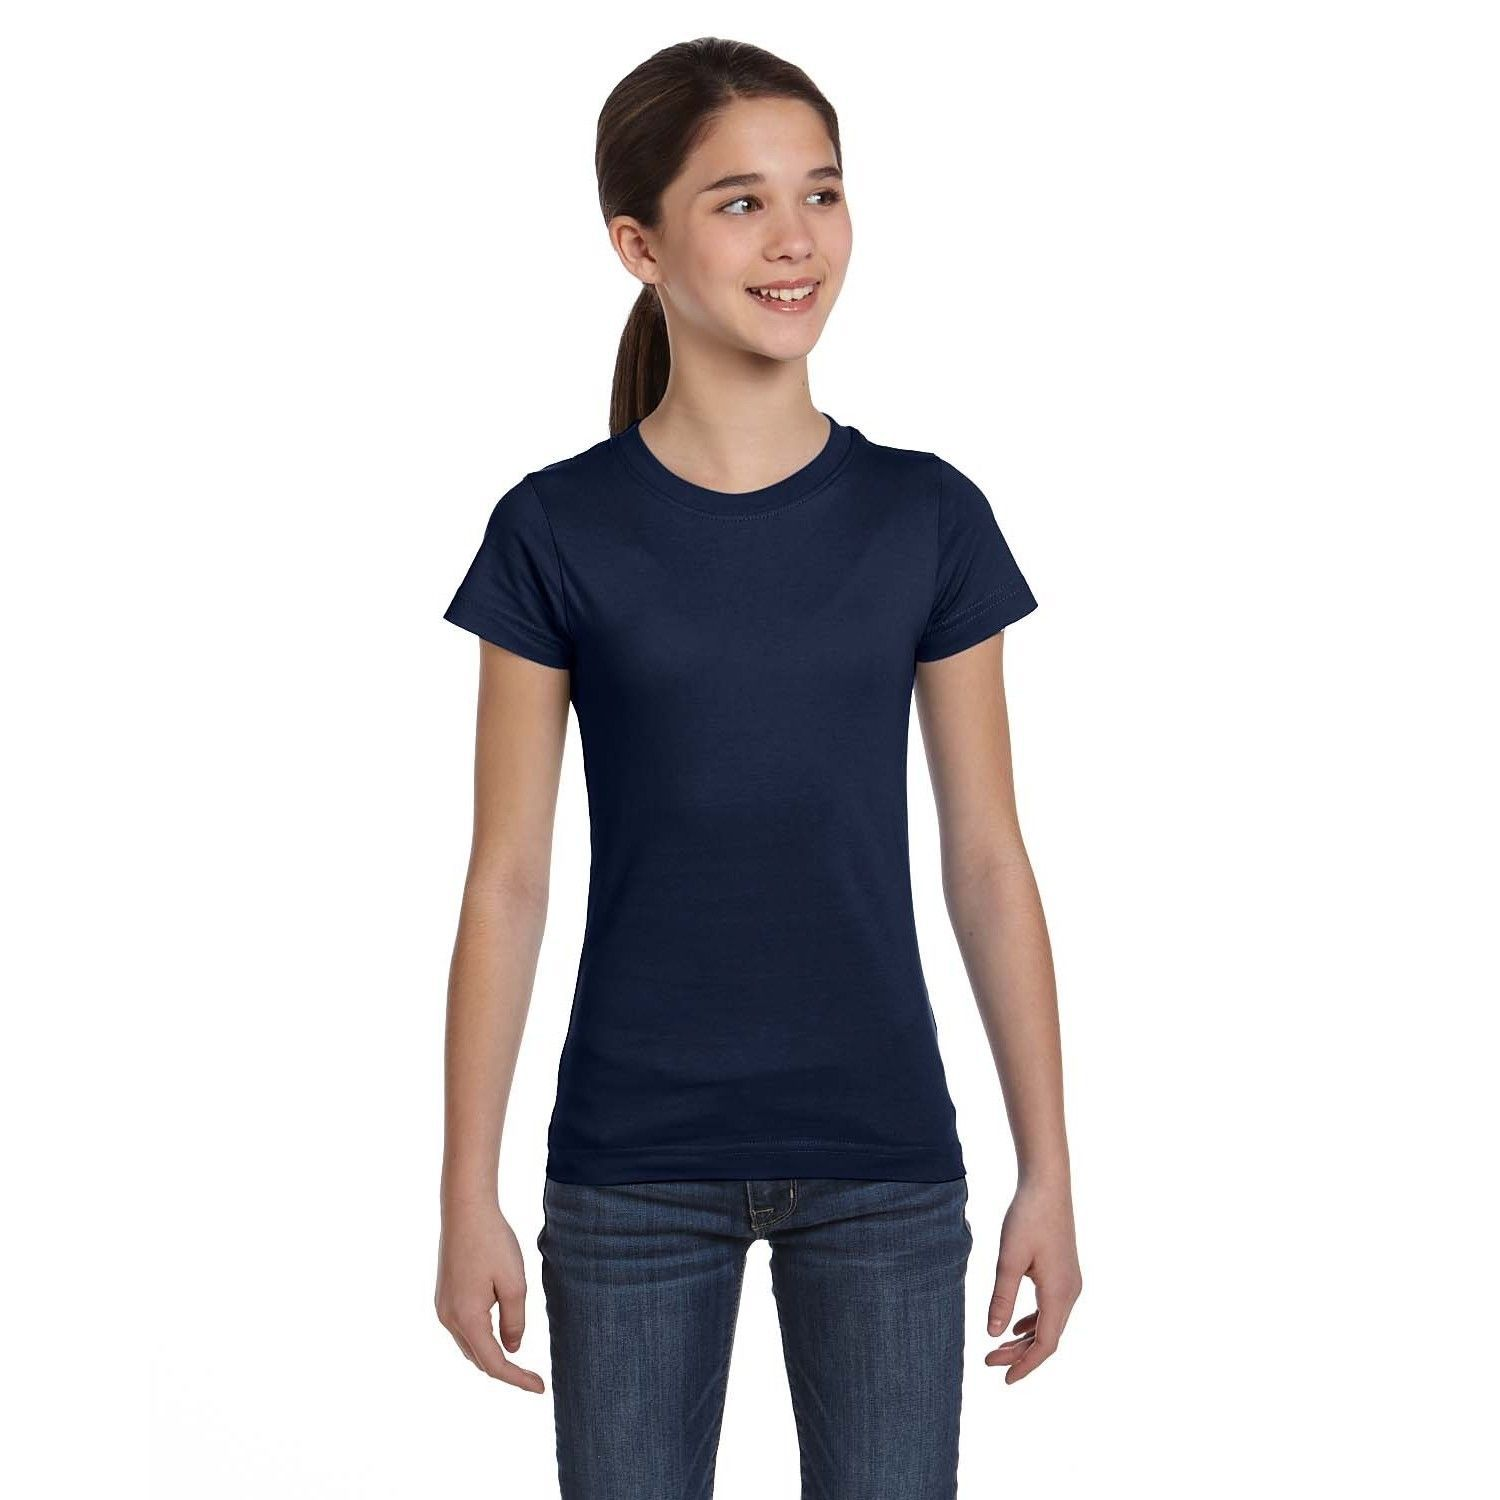 7105cdf2 Fine Girl's Navy T-shirt   Products   T shirt, Fine girls, Clothes